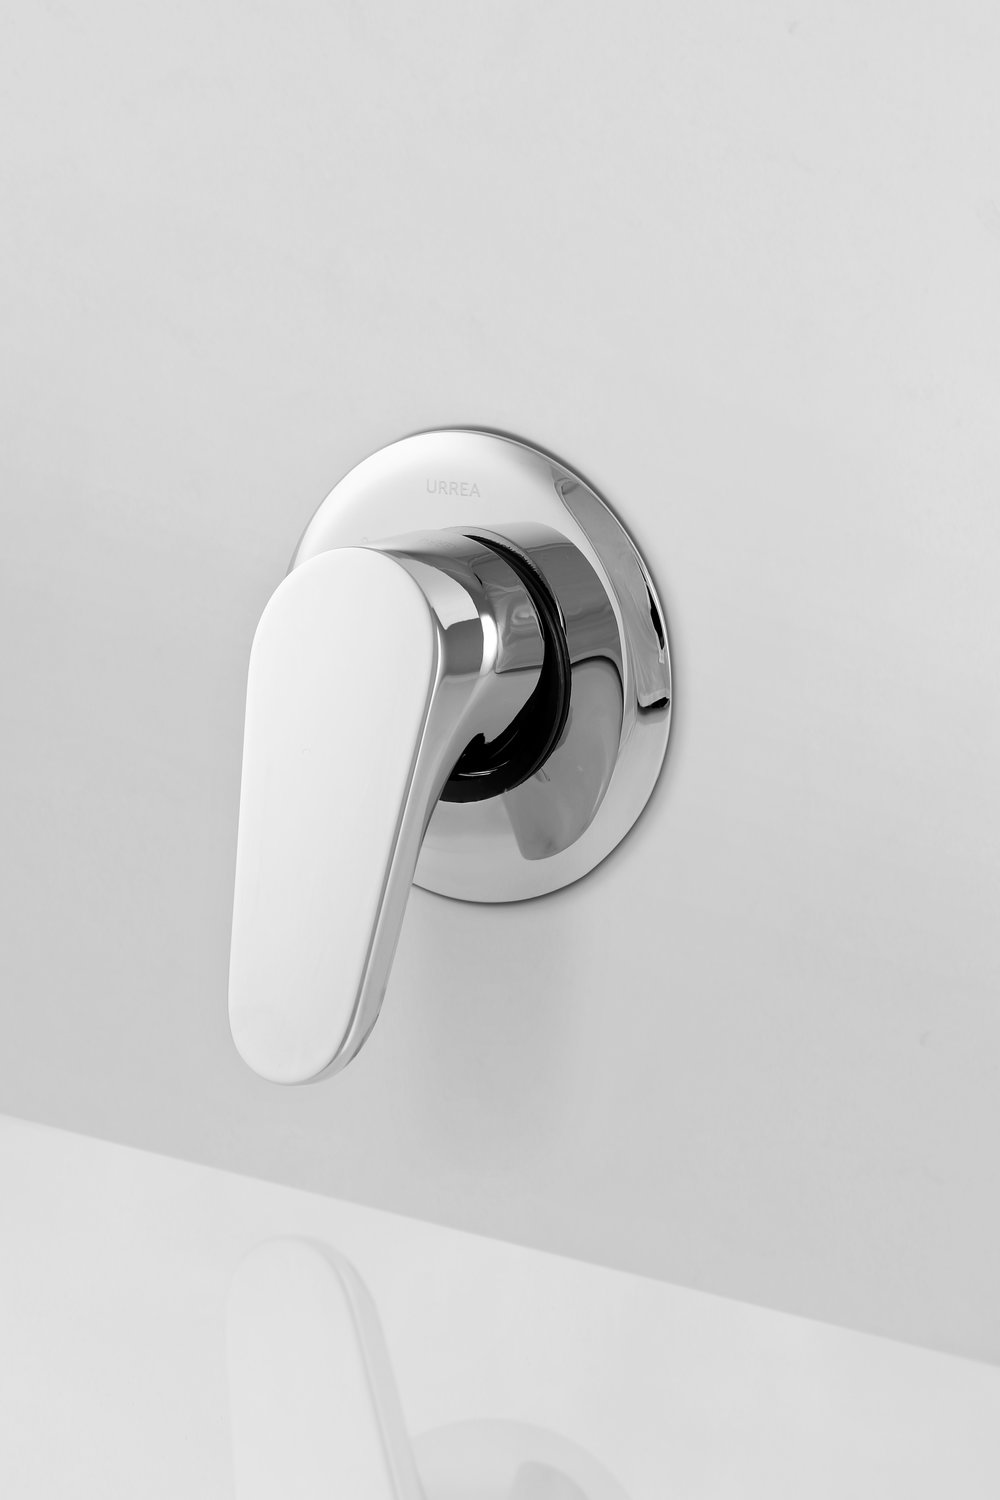 HATIA® Single-lever bath/shower mixer trim